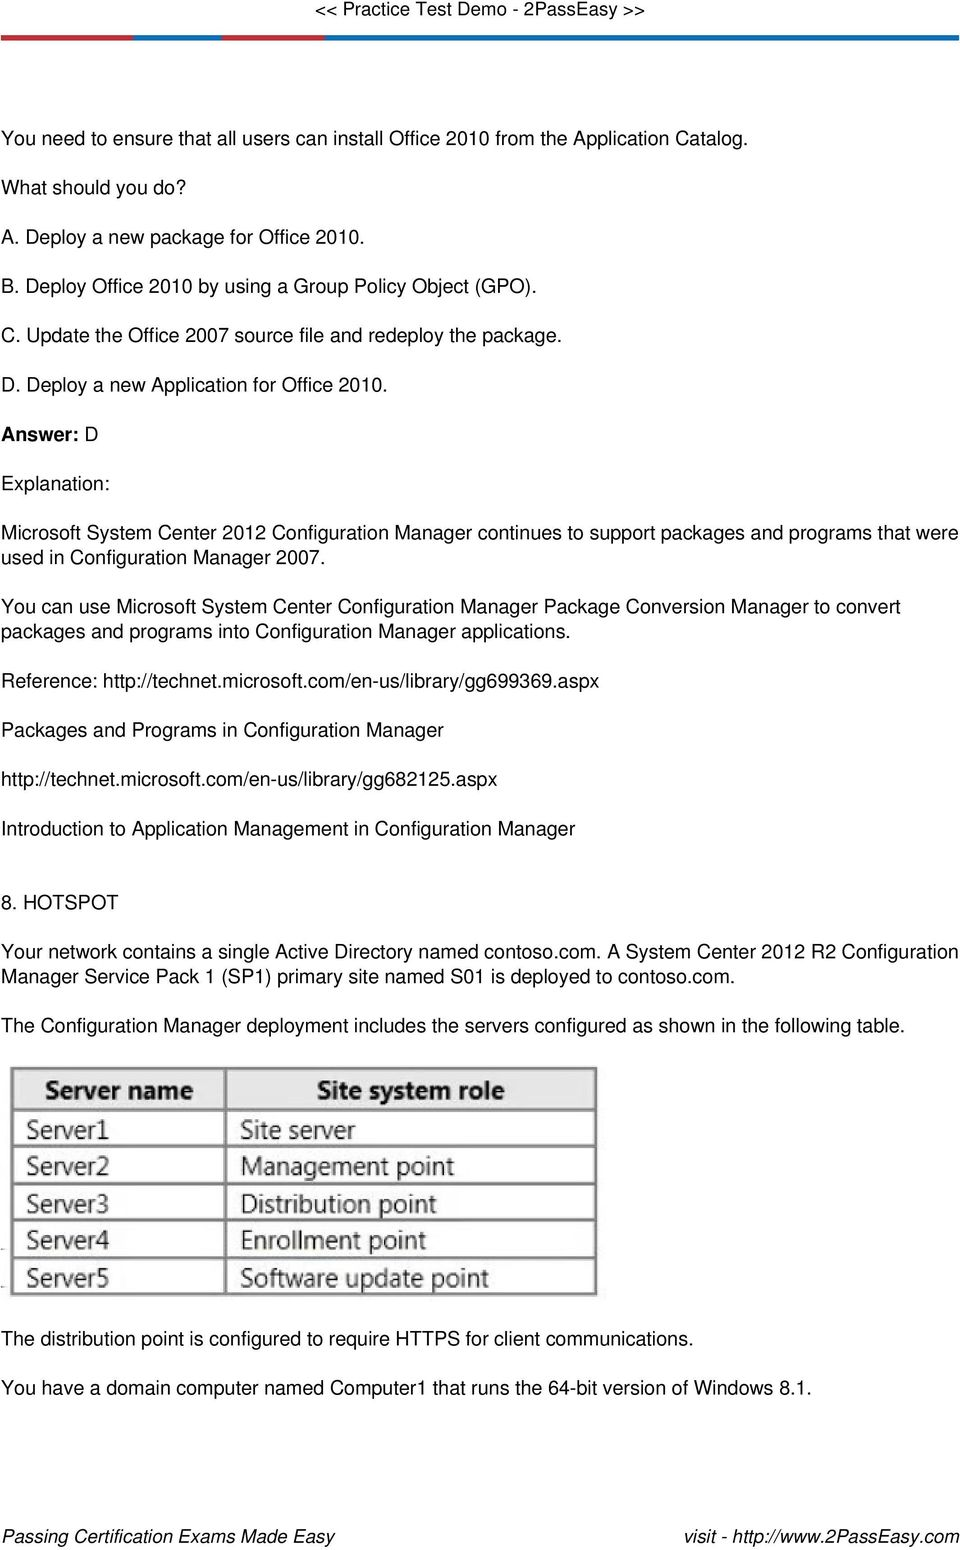 Answer: D Explanation: Microsoft System Center 2012 Configuration Manager continues to support packages and programs that were used in Configuration Manager 2007.